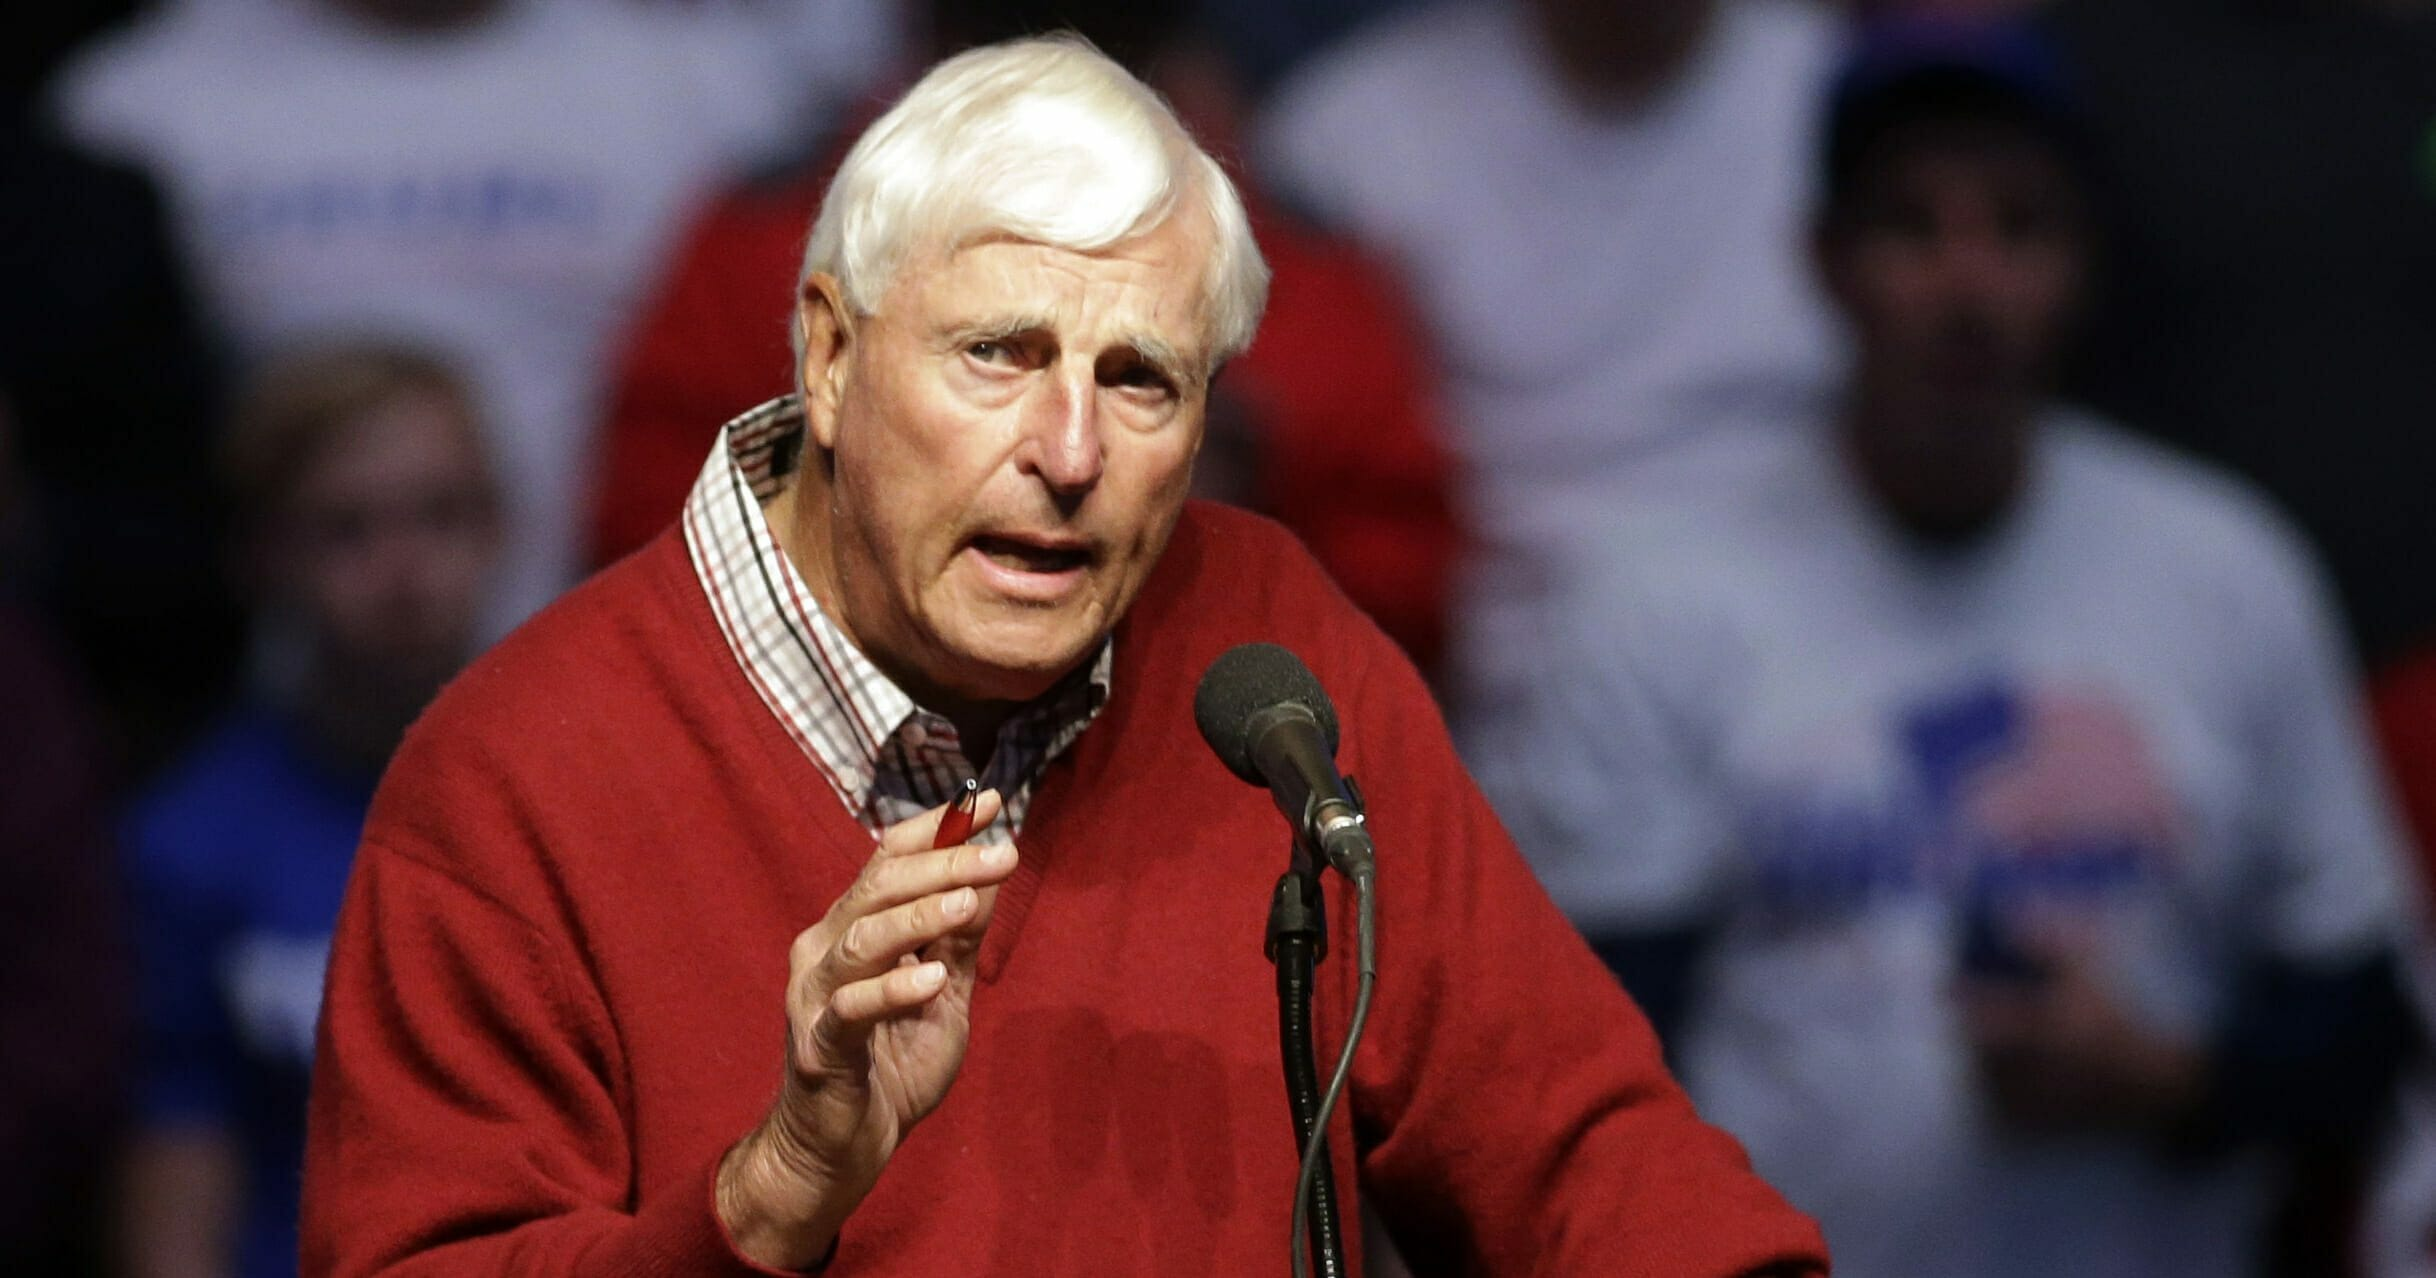 In this April 27, 2016, file photo, former Indiana basketball coach Bob Knight speaks during campaign stop for Republican presidential candidate Donald Trump in Indianapolis.